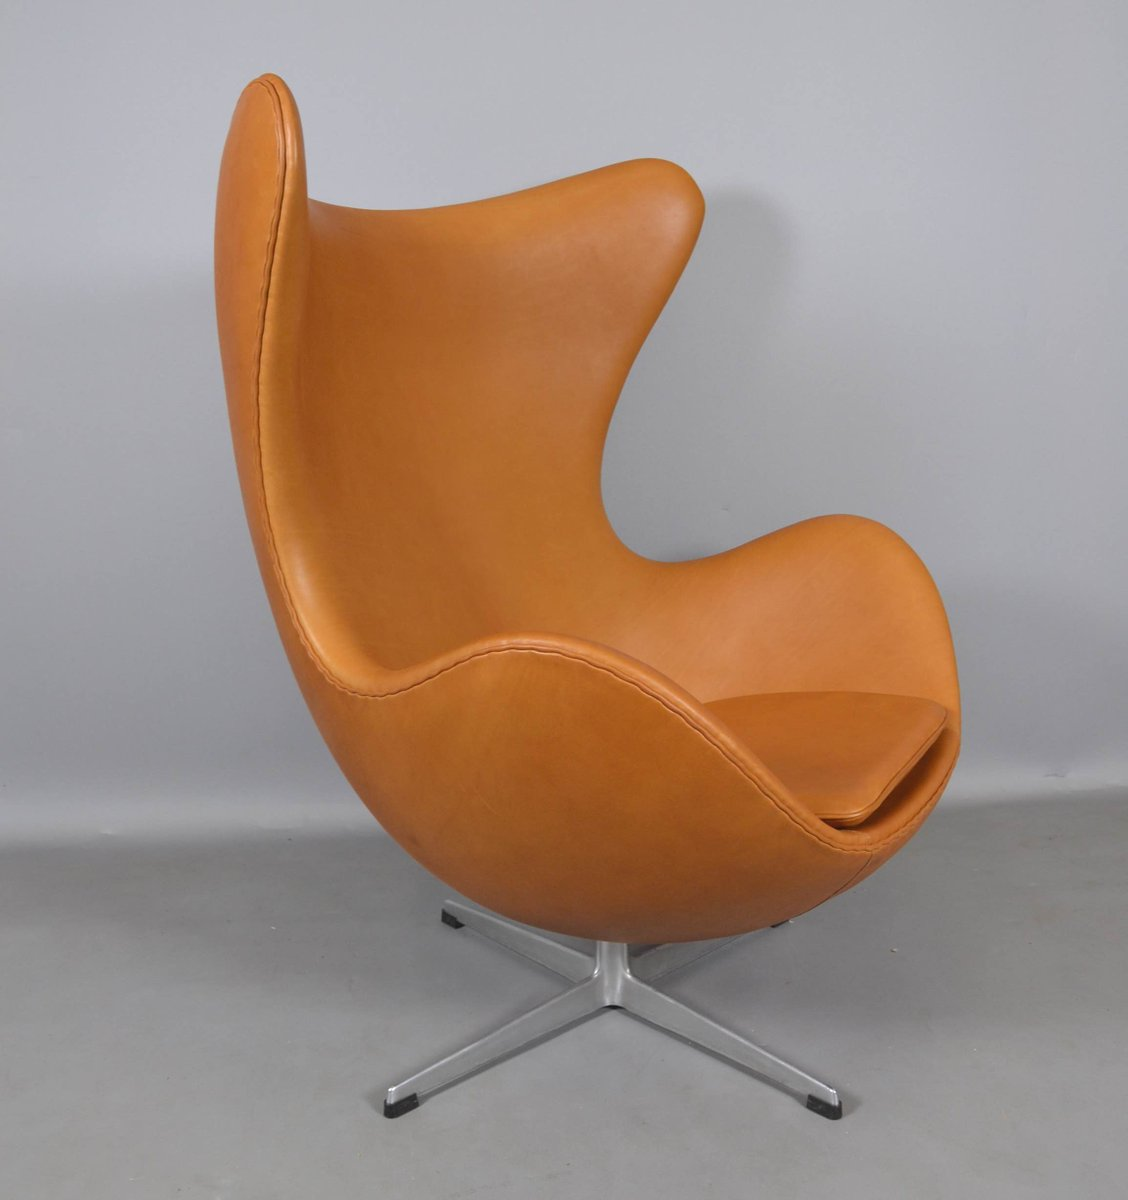 Leather Egg Chair By Arne Jacobsen For Fritz Hansen 1970s